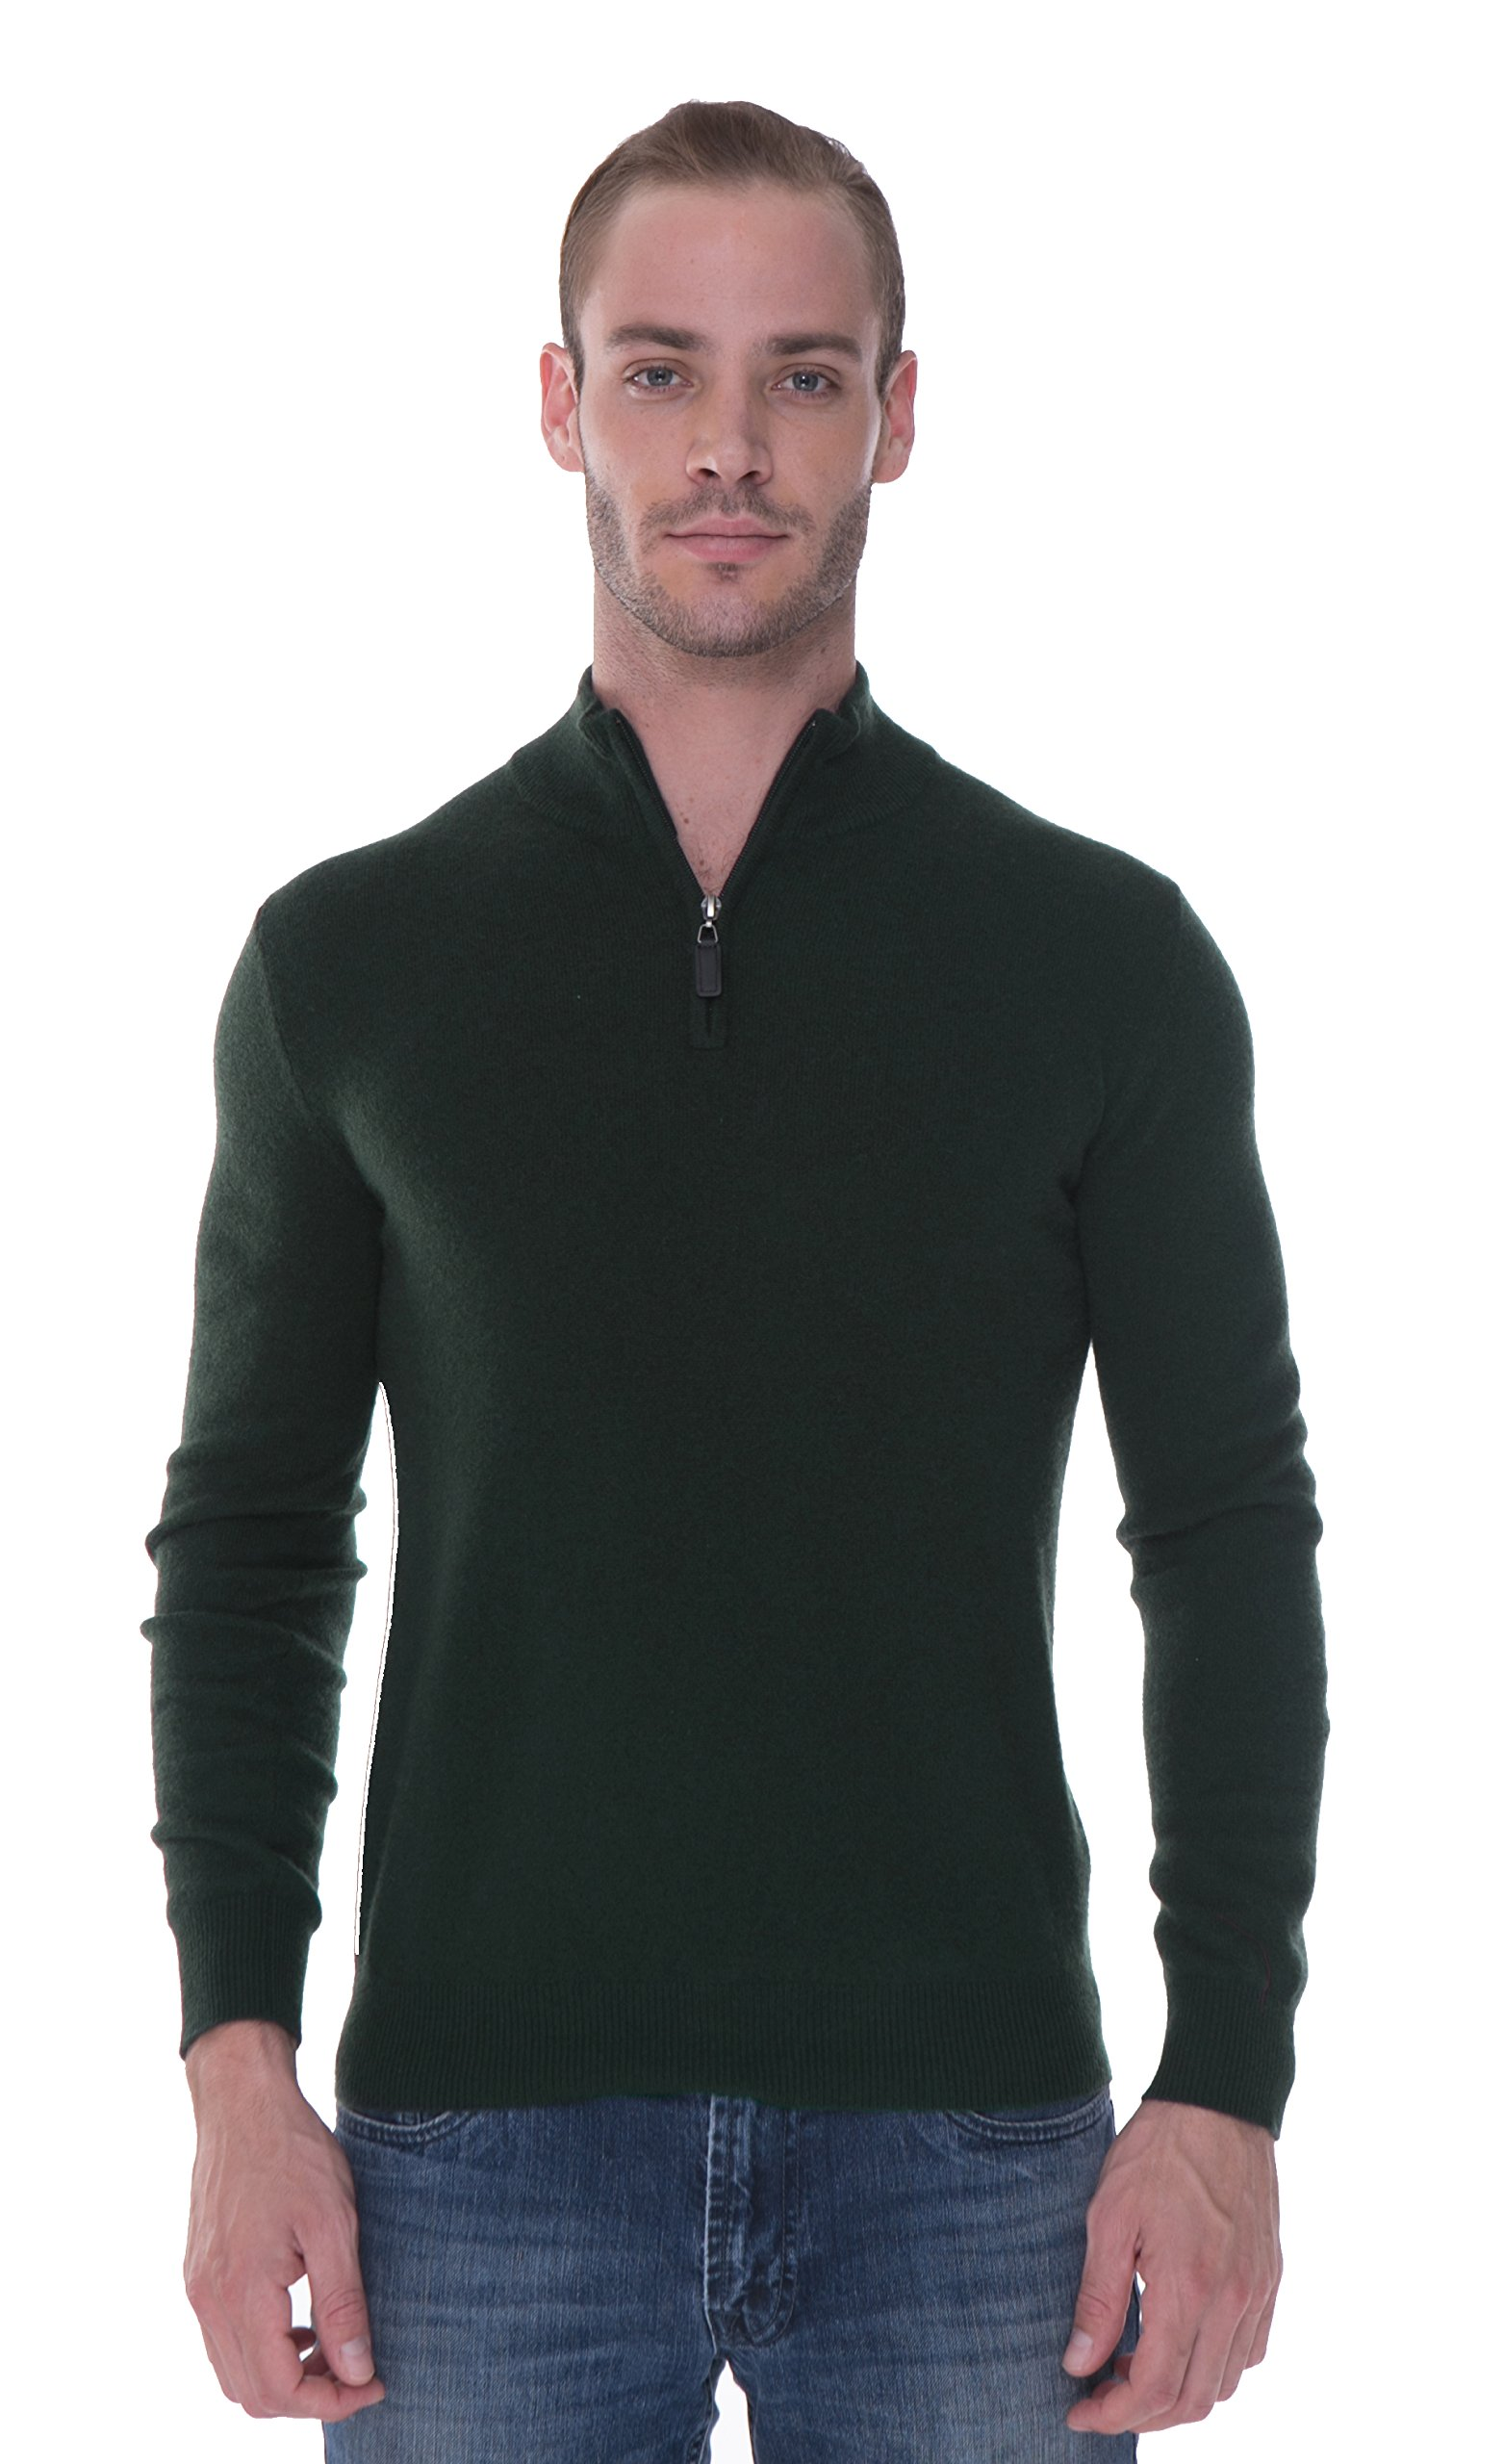 LEBAC 100% Cashmere Sweater Quarter Zip Pullover For Men by